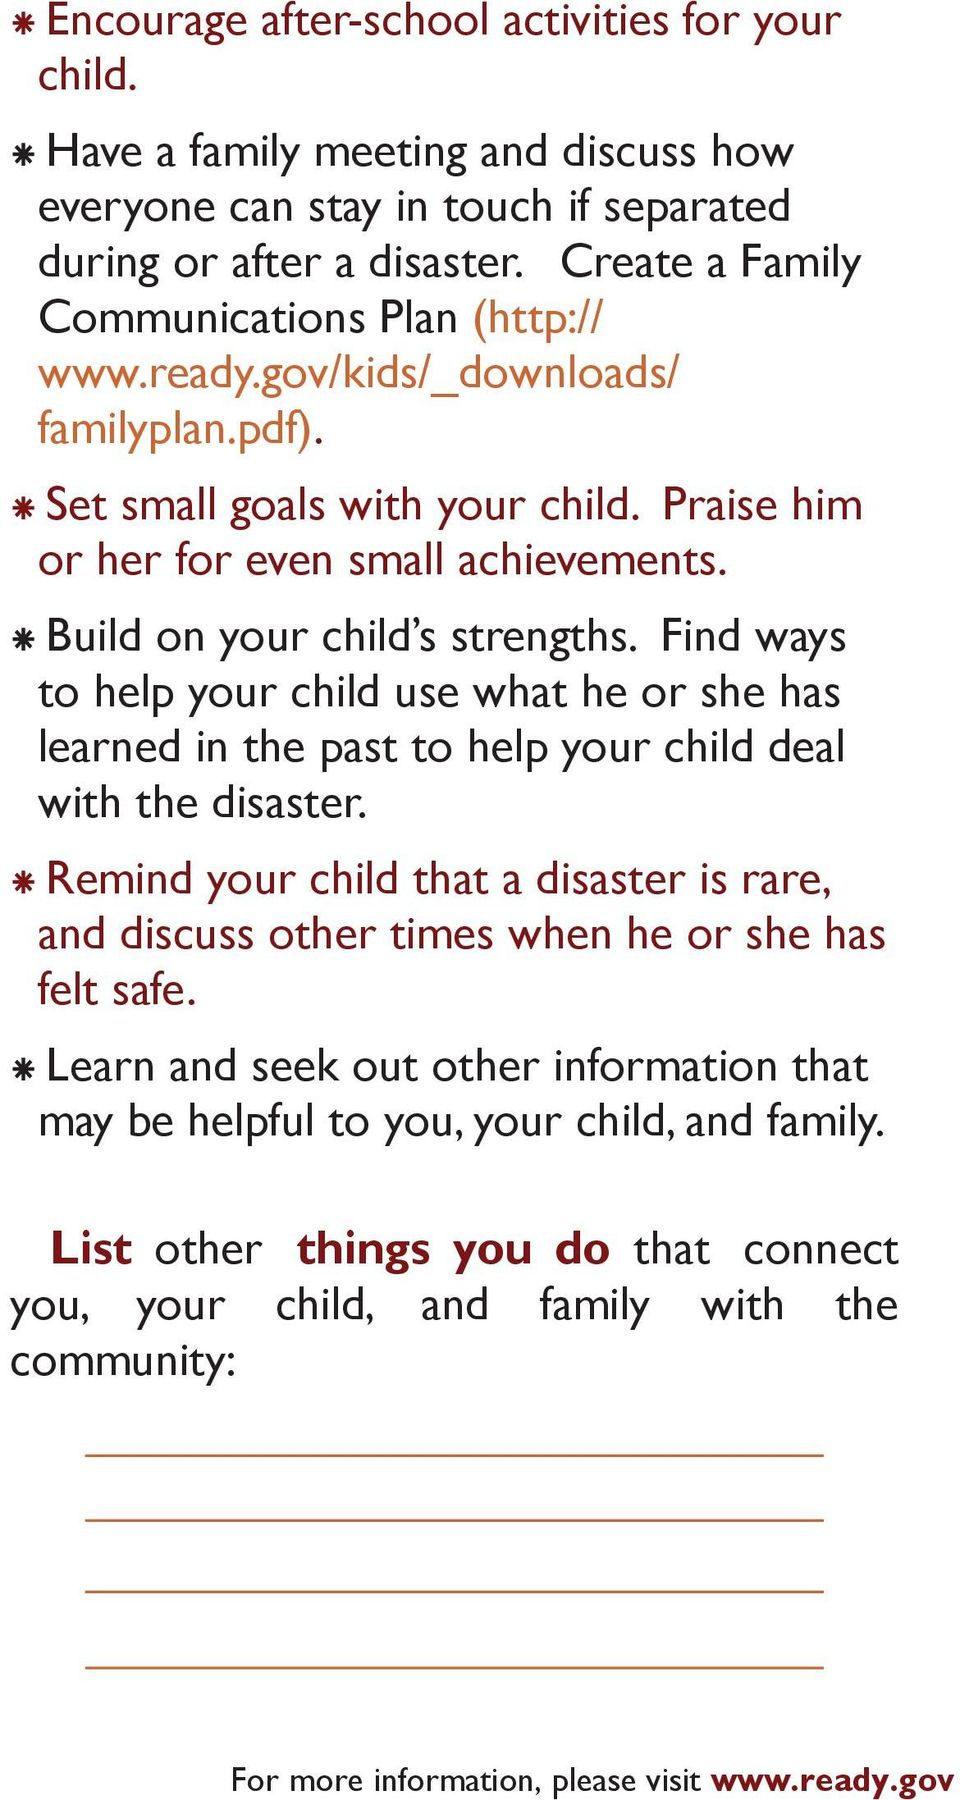 Build on your child s strengths. Find ways to help your child use what he or she has learned in the past to help your child deal with the disaster.